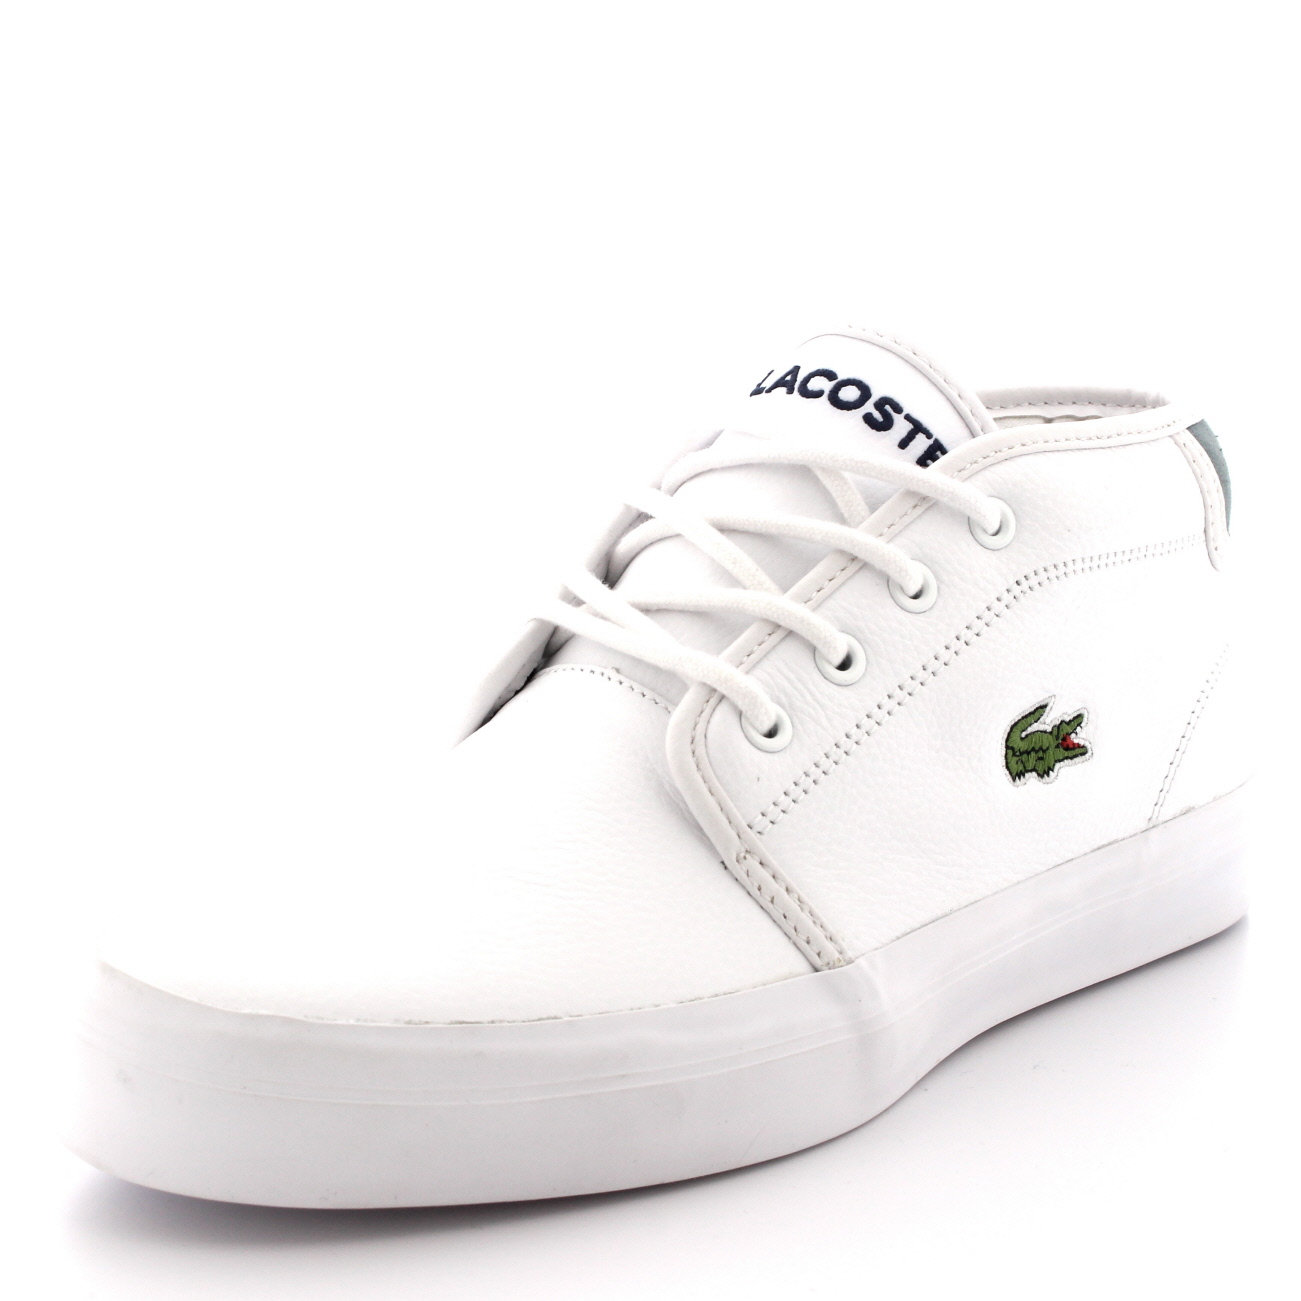 8ff9848fbdf9d Mens Lacoste Ampthill Chunky SEP SPM Shoes Casual Mid Top Trainers ...